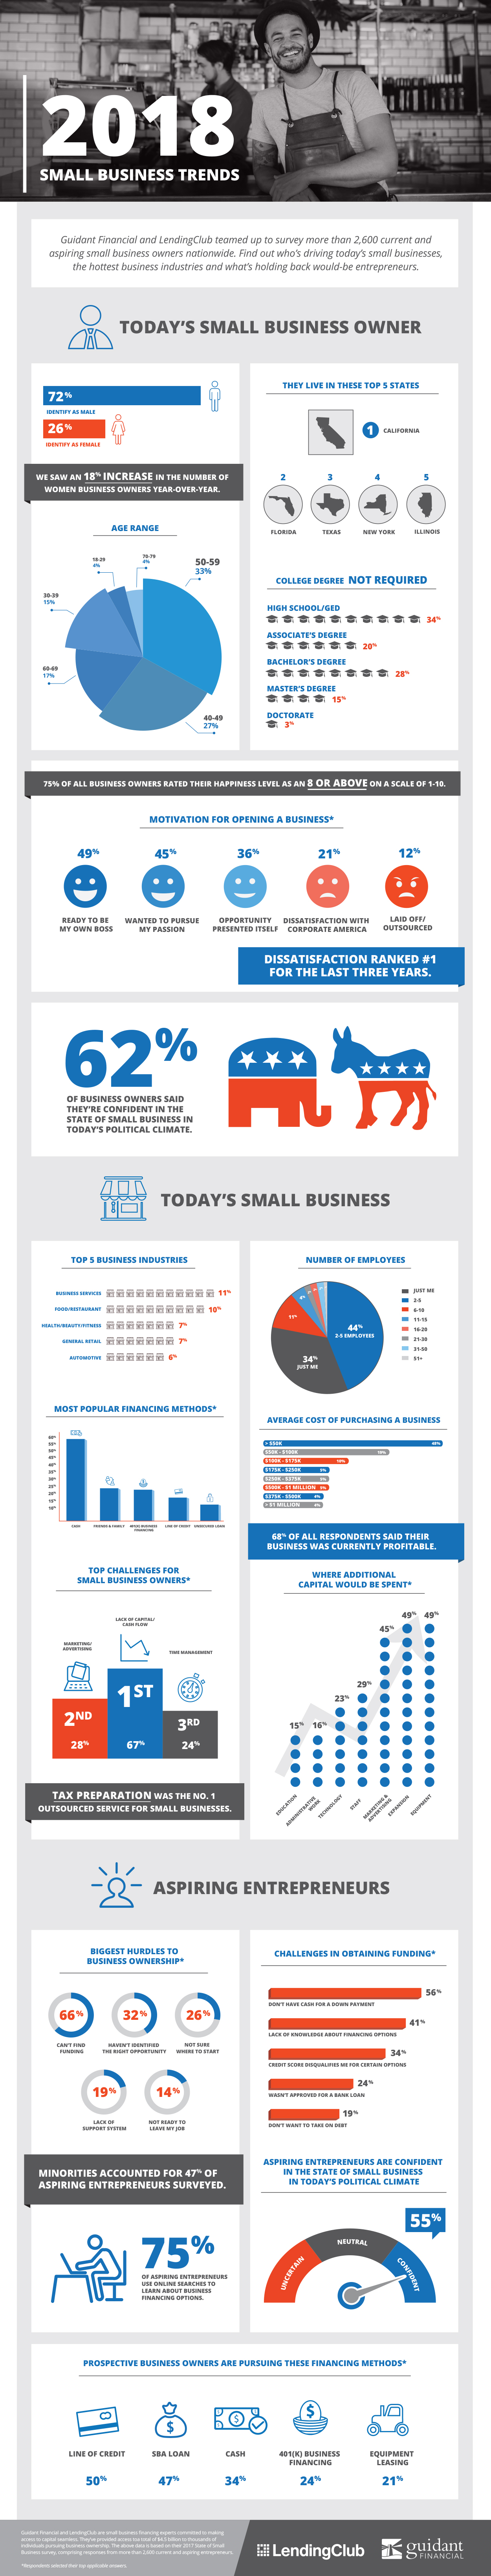 Infographic] 2018 Small Business Trends | Guidant Financial